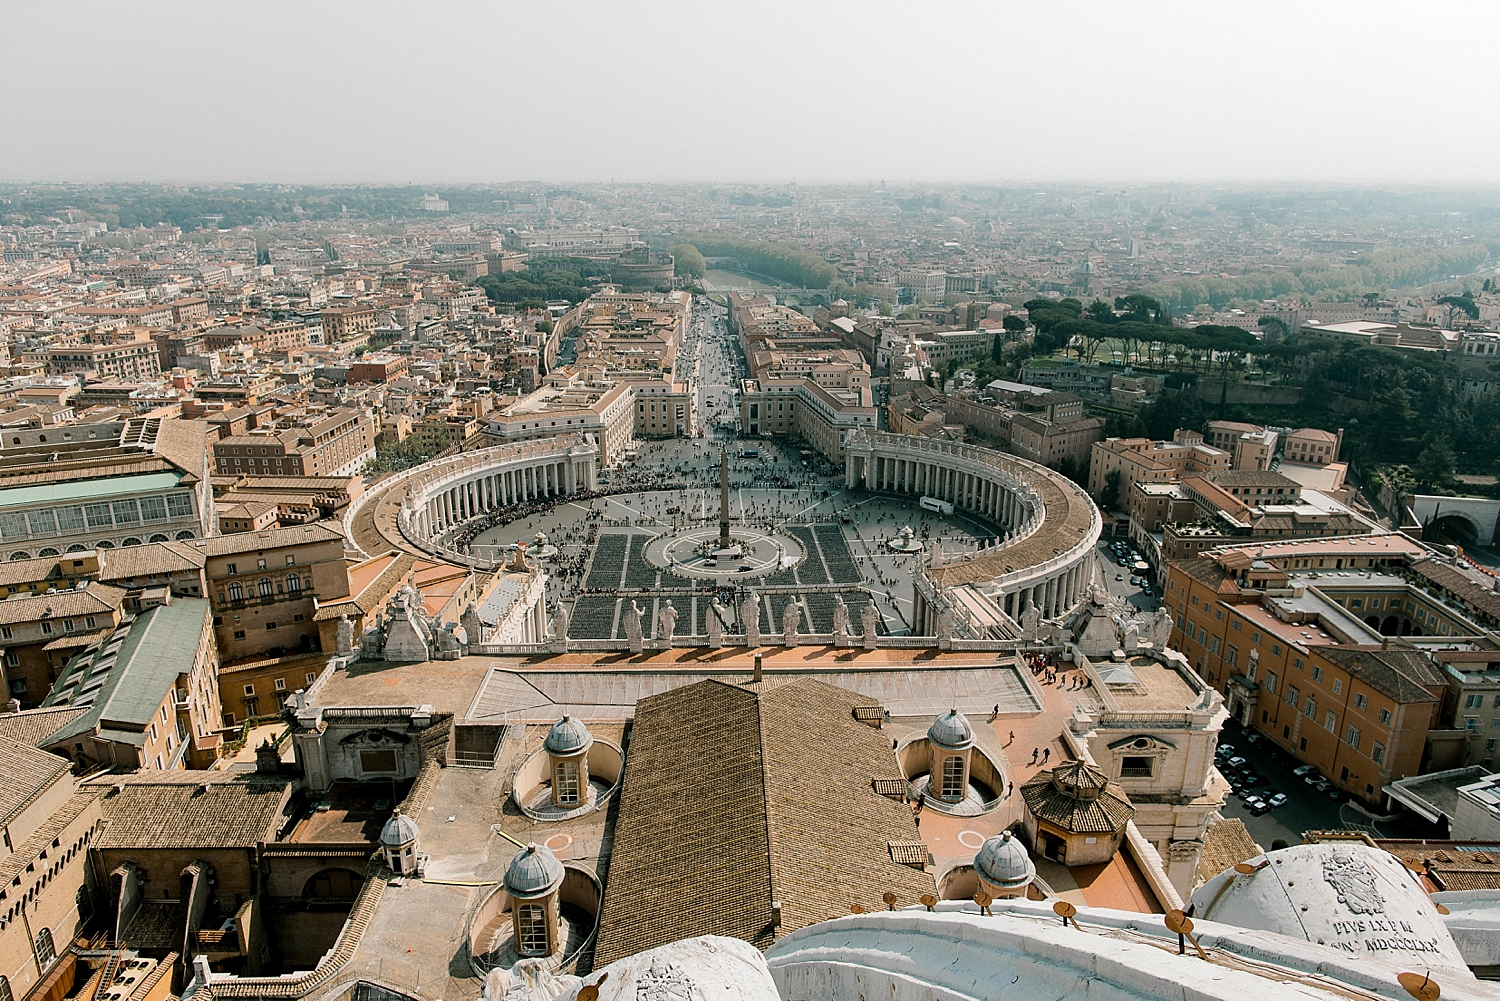 View from top of St. Peter's Basilica's dome